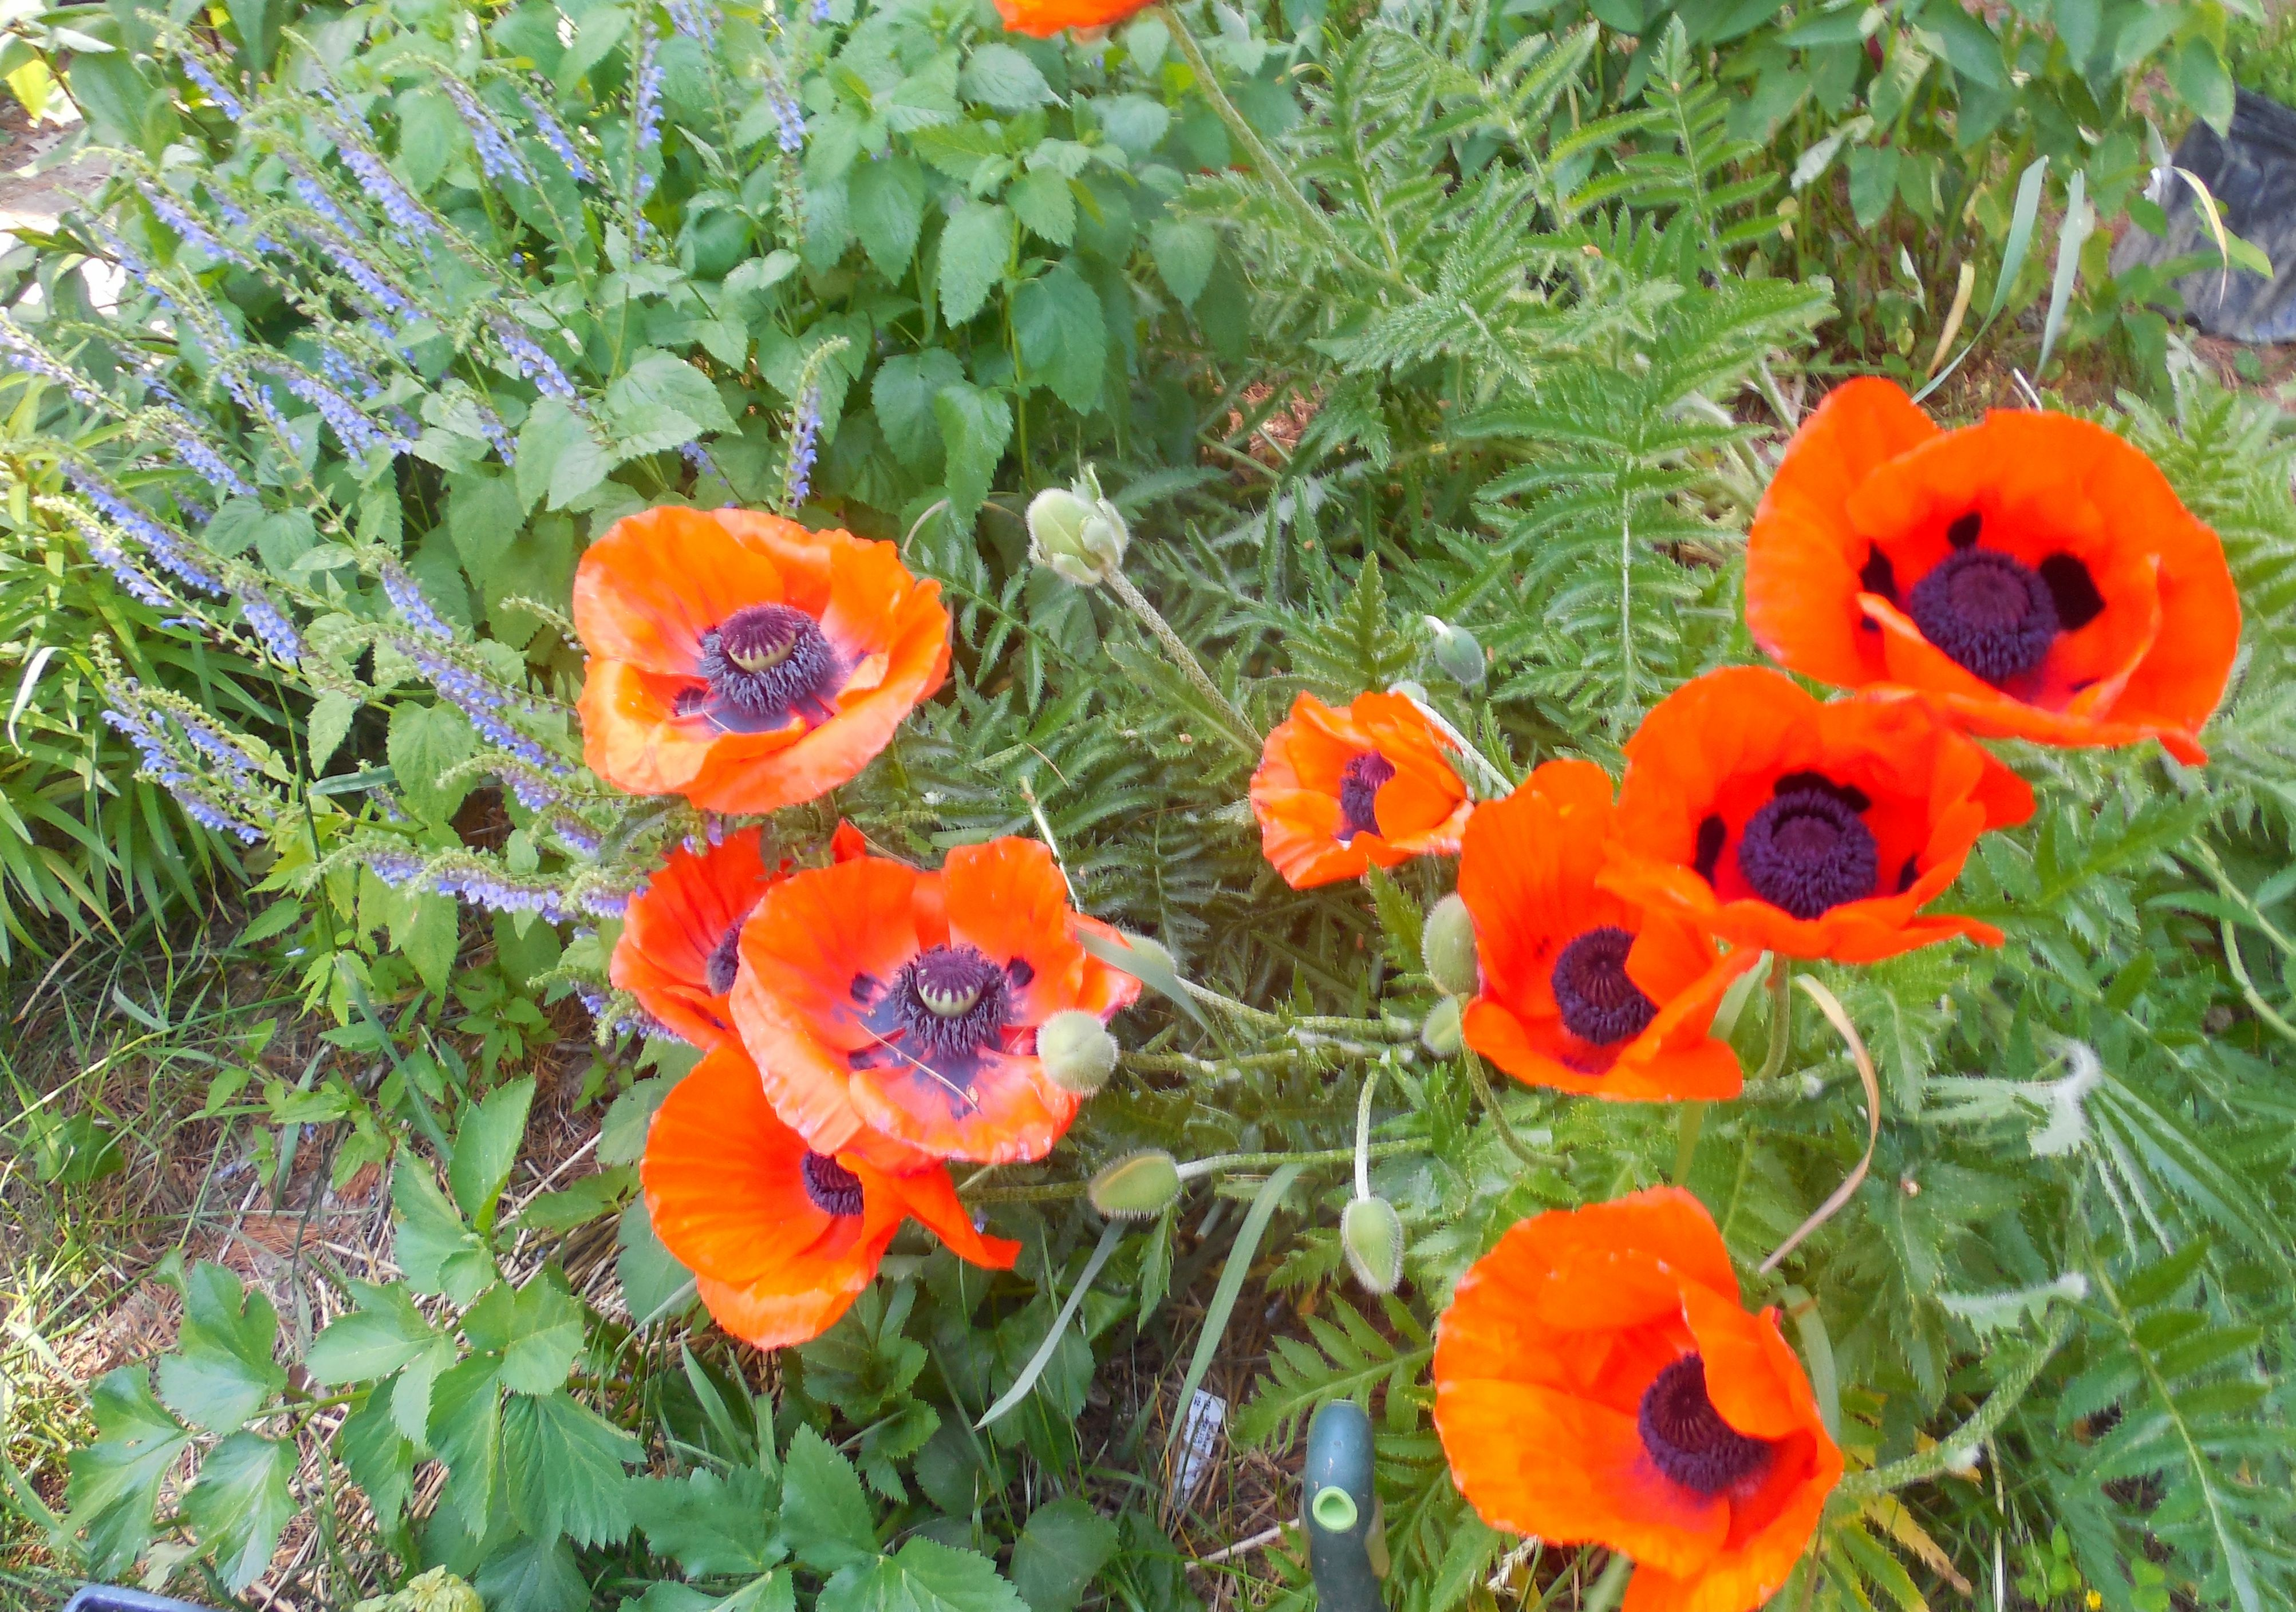 Poppies bloom as temperatures rise in Enfield (photo)